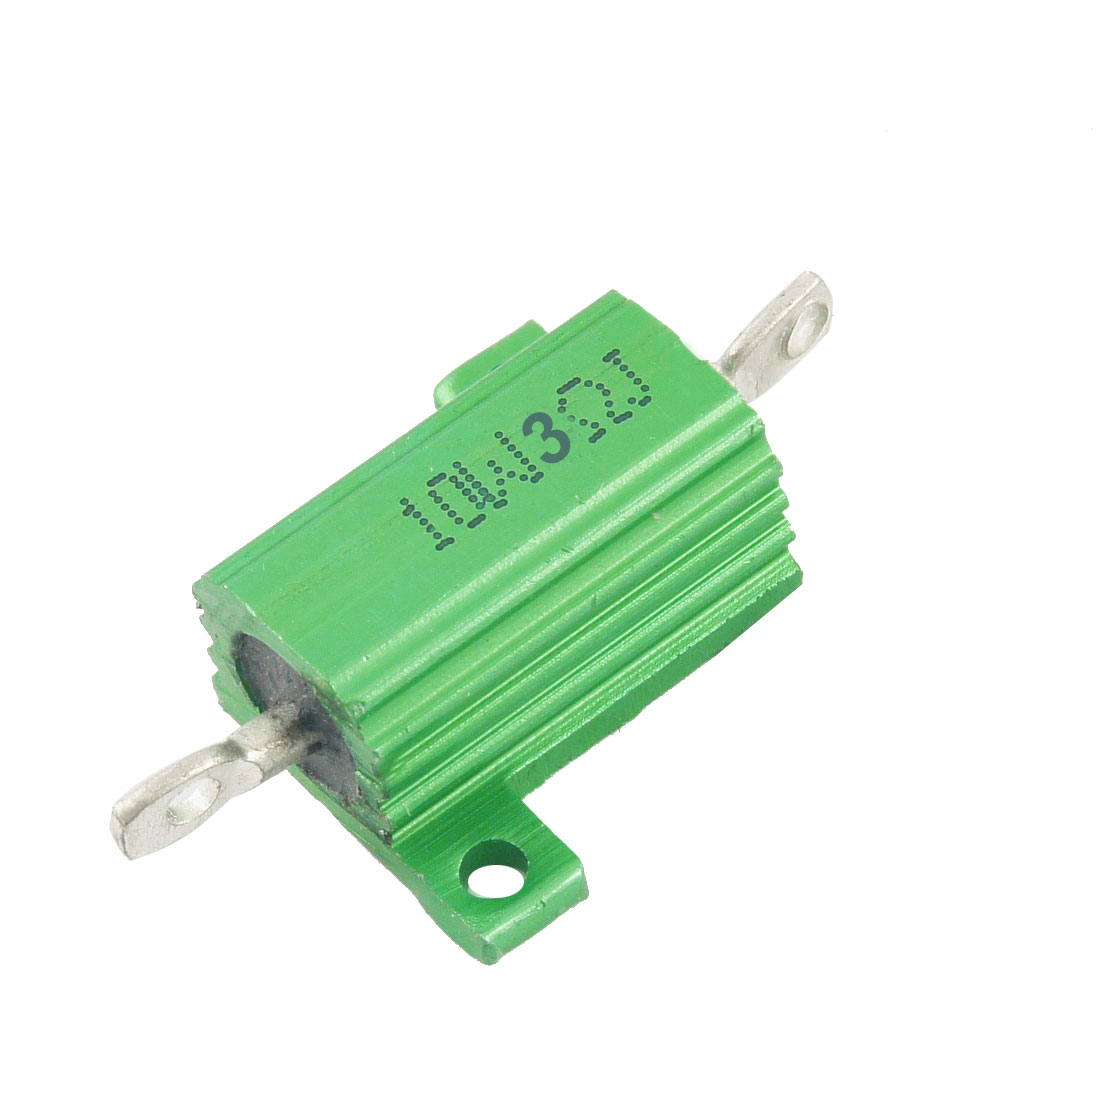 Green 10 Watt 3 Ohm 5% Aluminum Shell Wire Wound Resistor